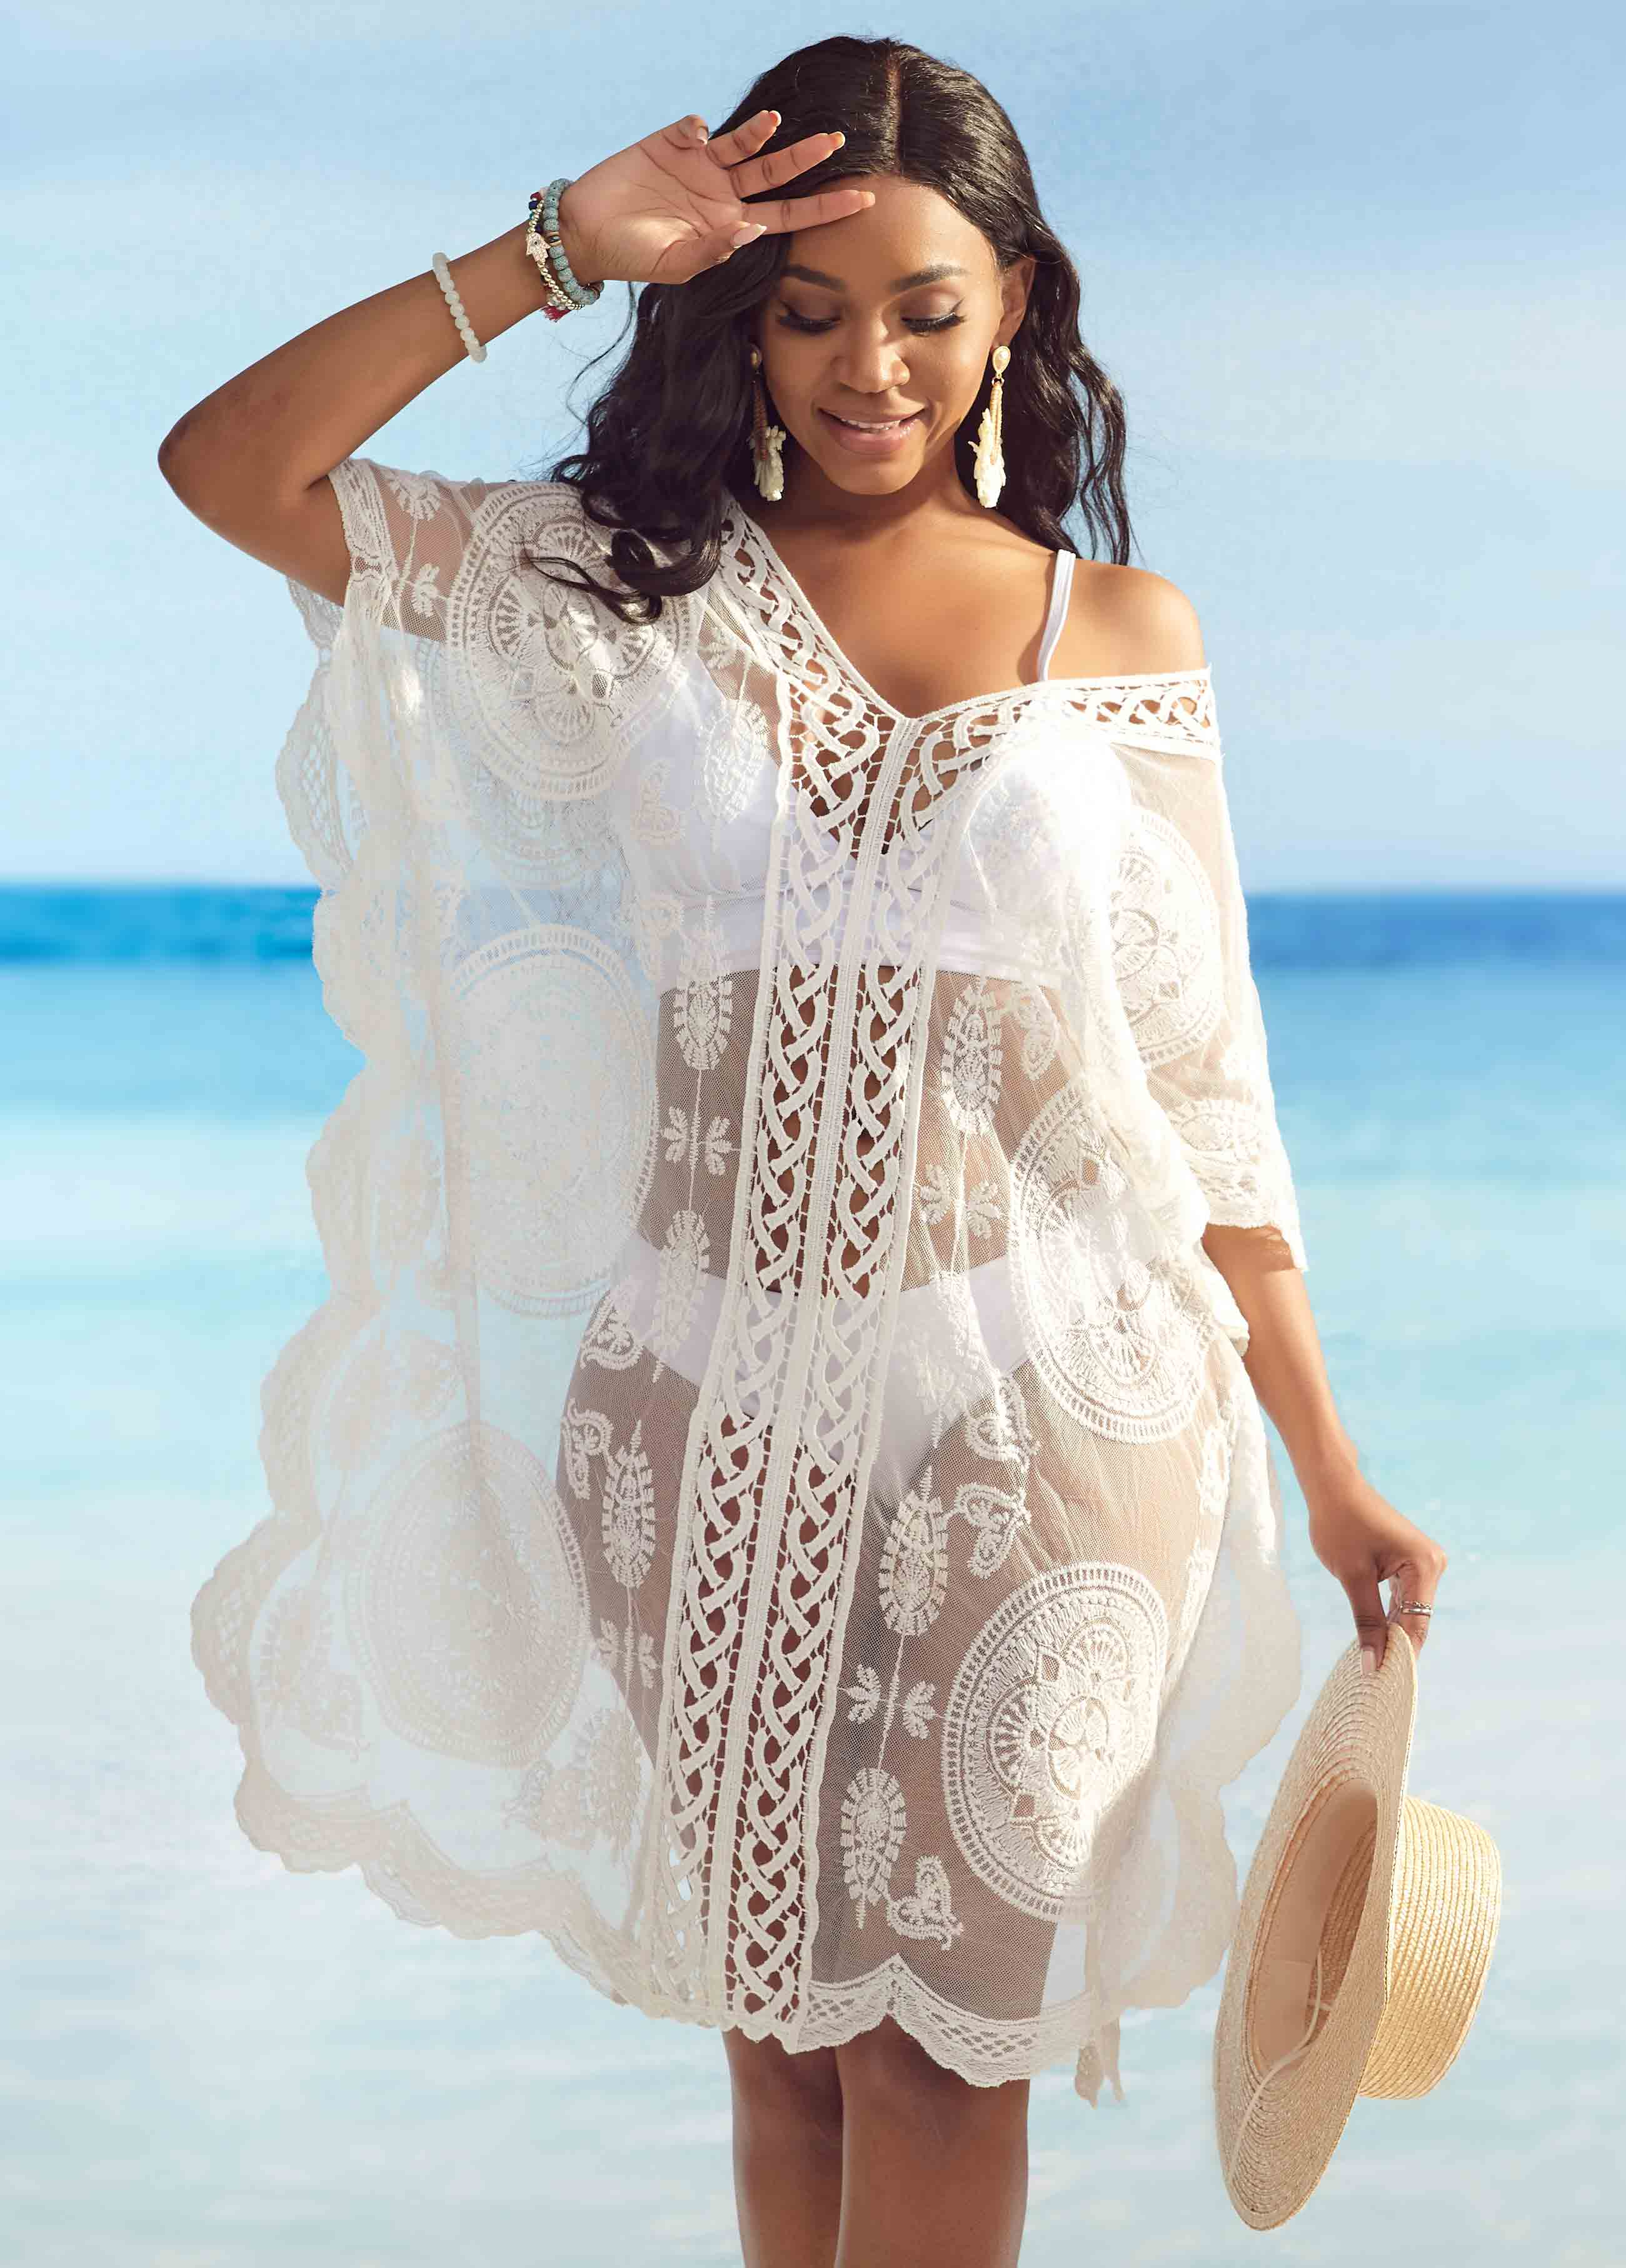 V Neck Lace Trim White Cover Up